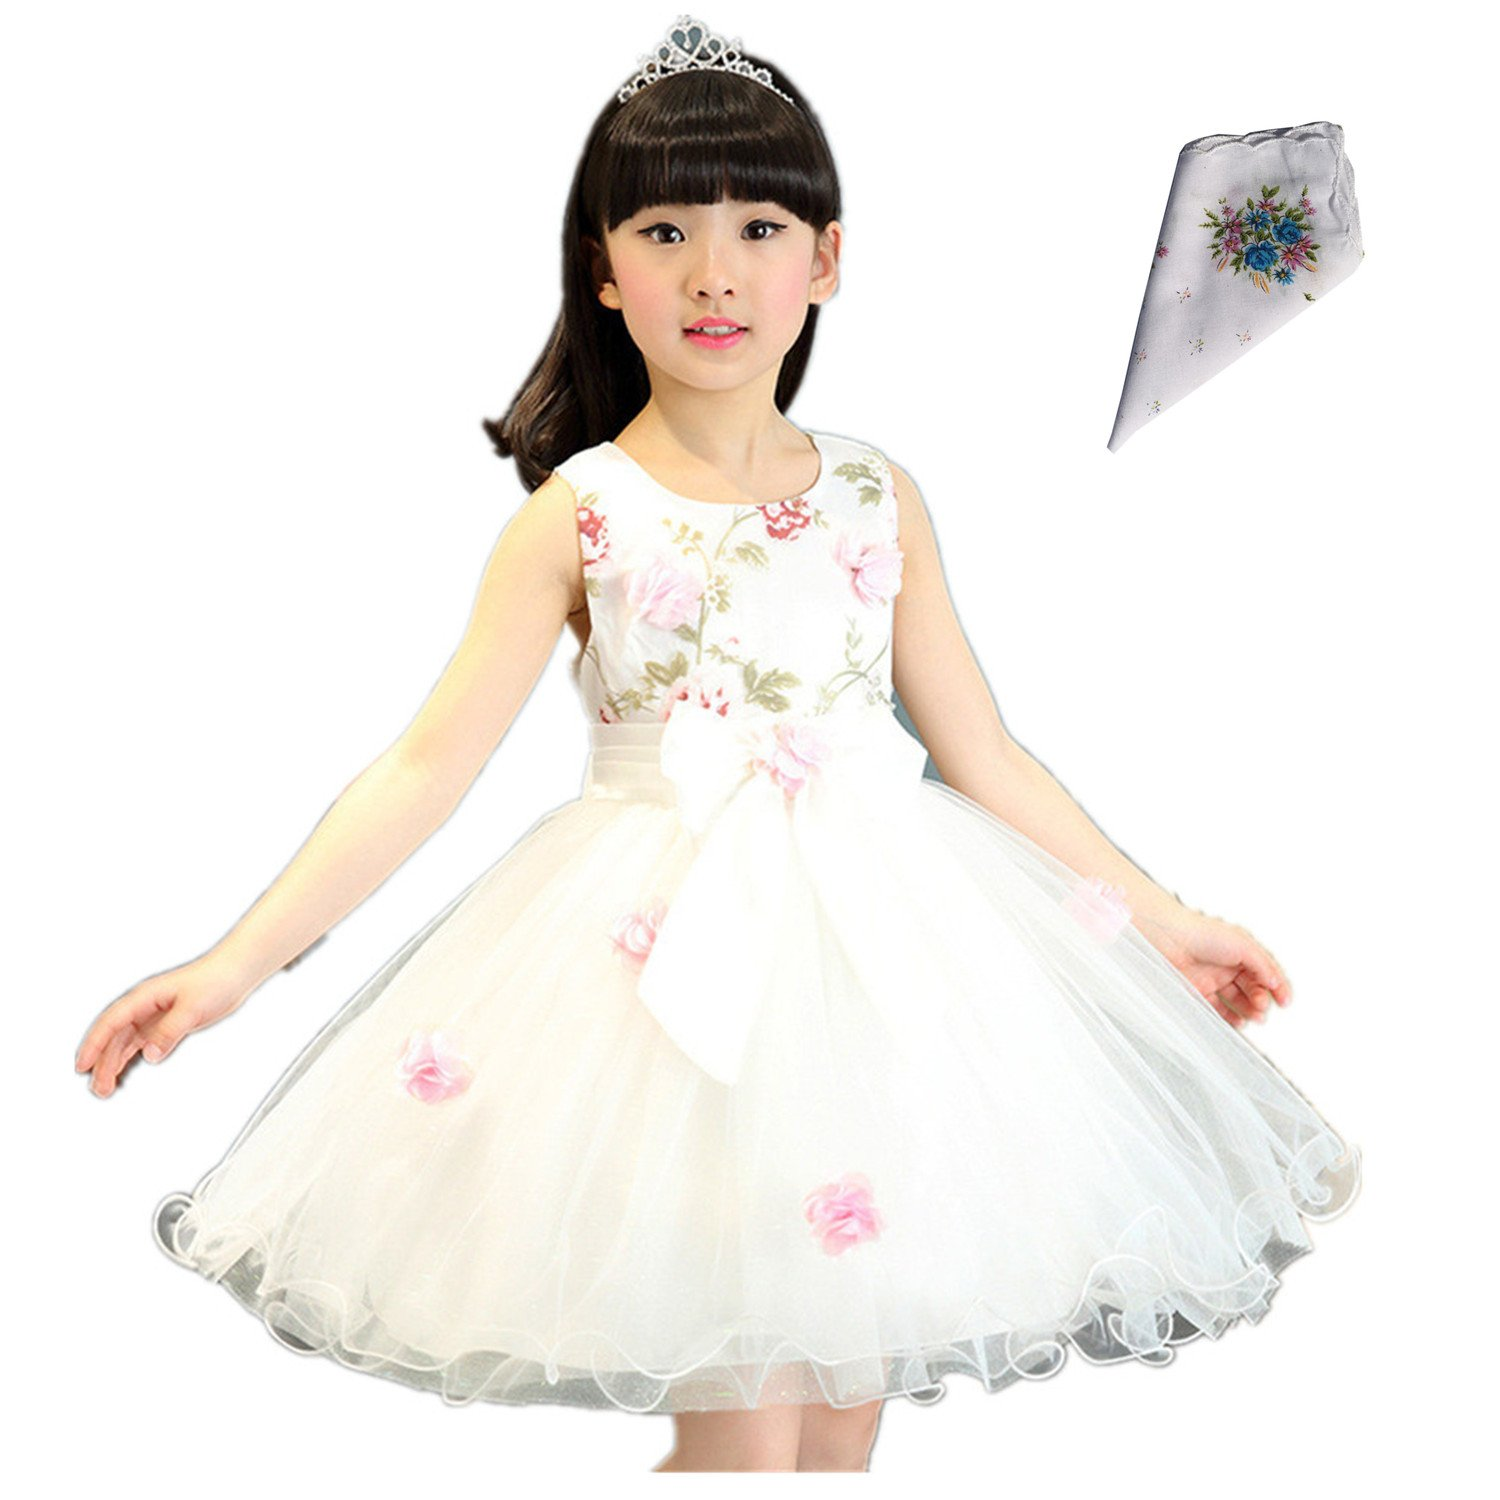 FTSUCQ Girls Floral Printed Bowknot Twirling Princess Dress (120(6-7Y), White) by Dillian Dress (Image #1)